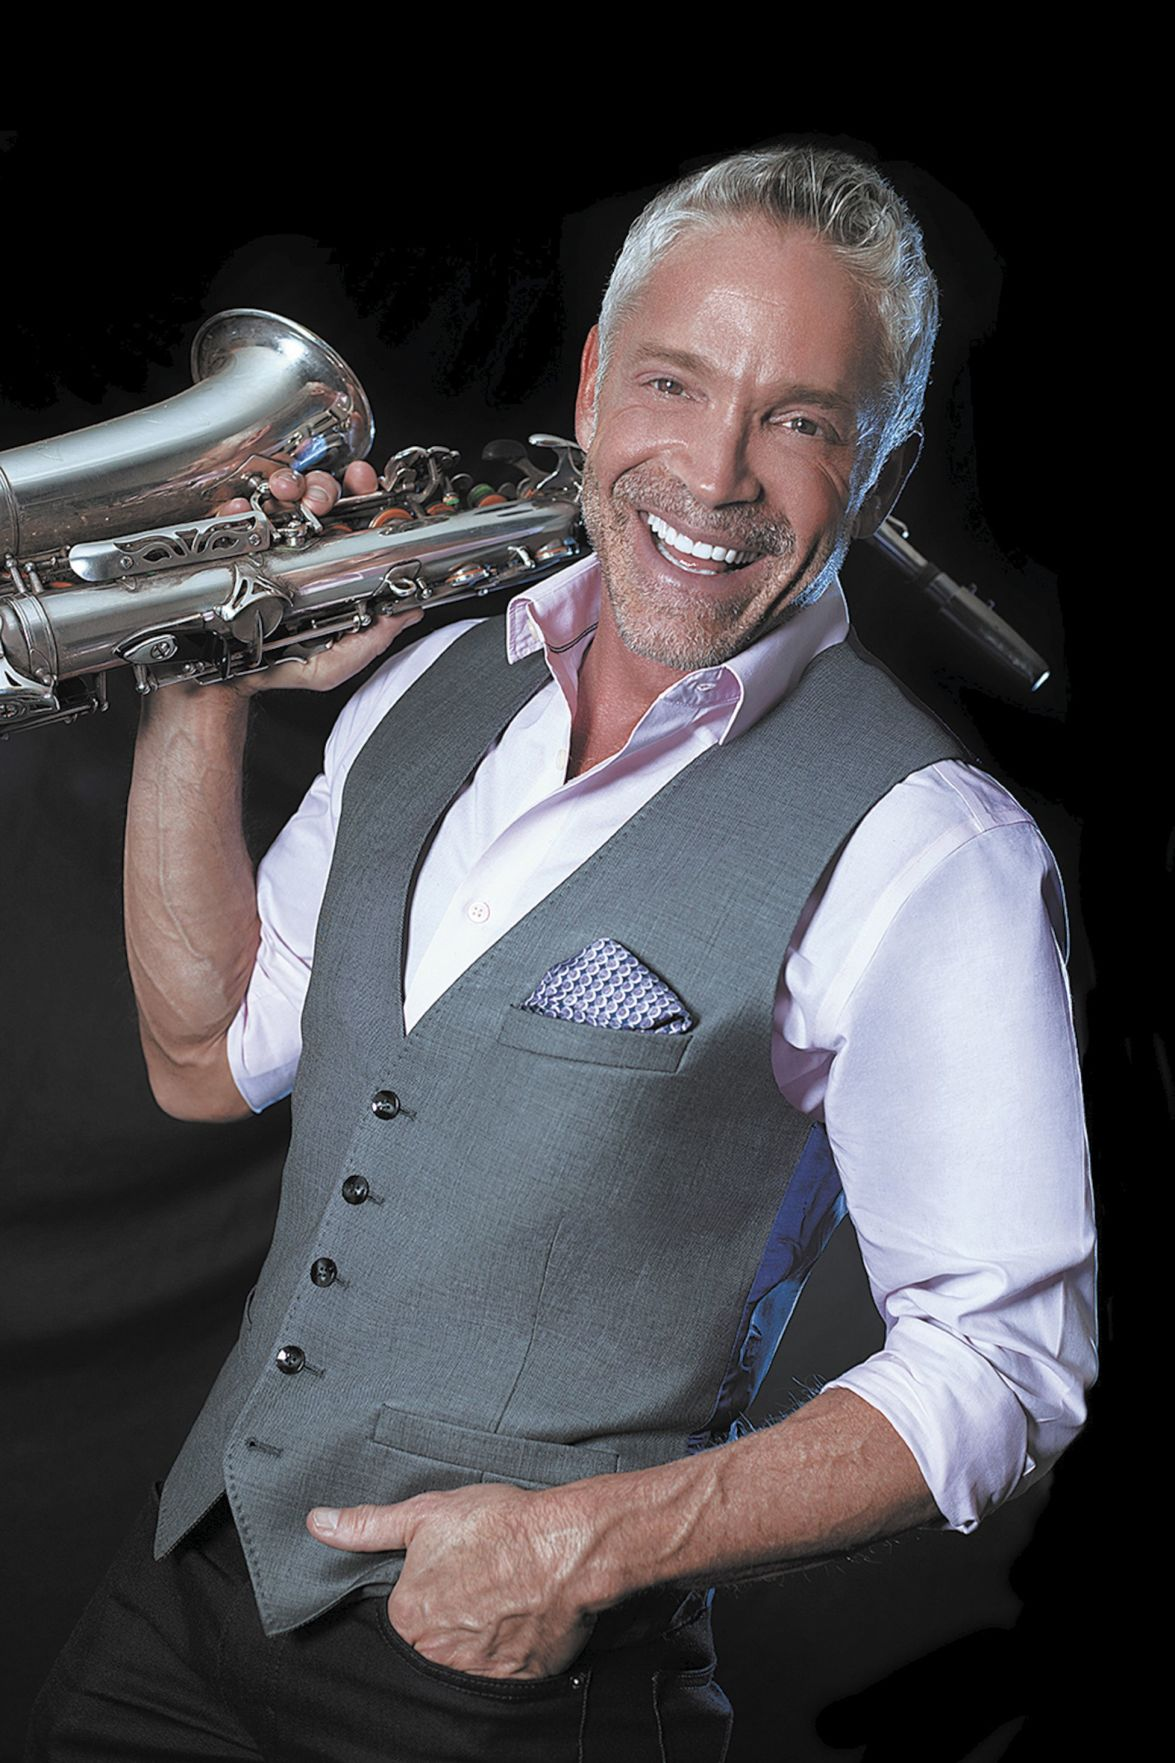 Dave Koz Christmas Concert No. California 2020 Koz looks to bring extra holiday cheer to El Paso | Local Features